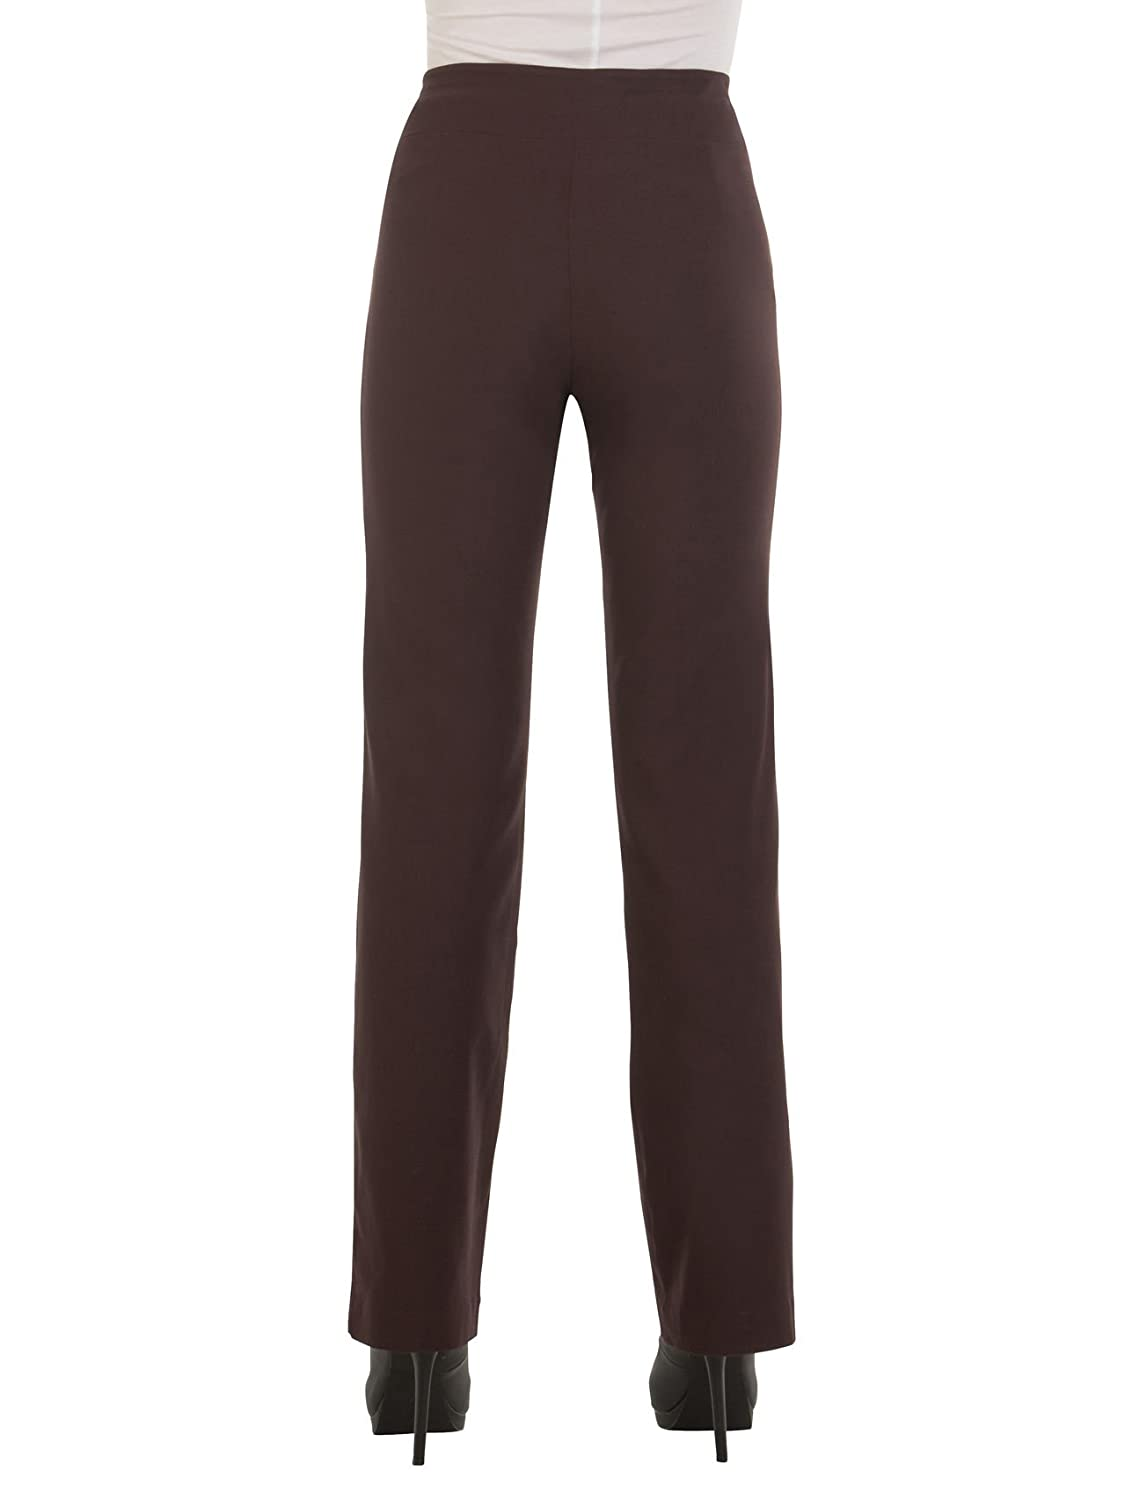 1655fc01efe4c Red Hanger Bootcut Dress Pants for Women -Stretch Comfy Work Pull on Womens  Pant at Amazon Women s Clothing store